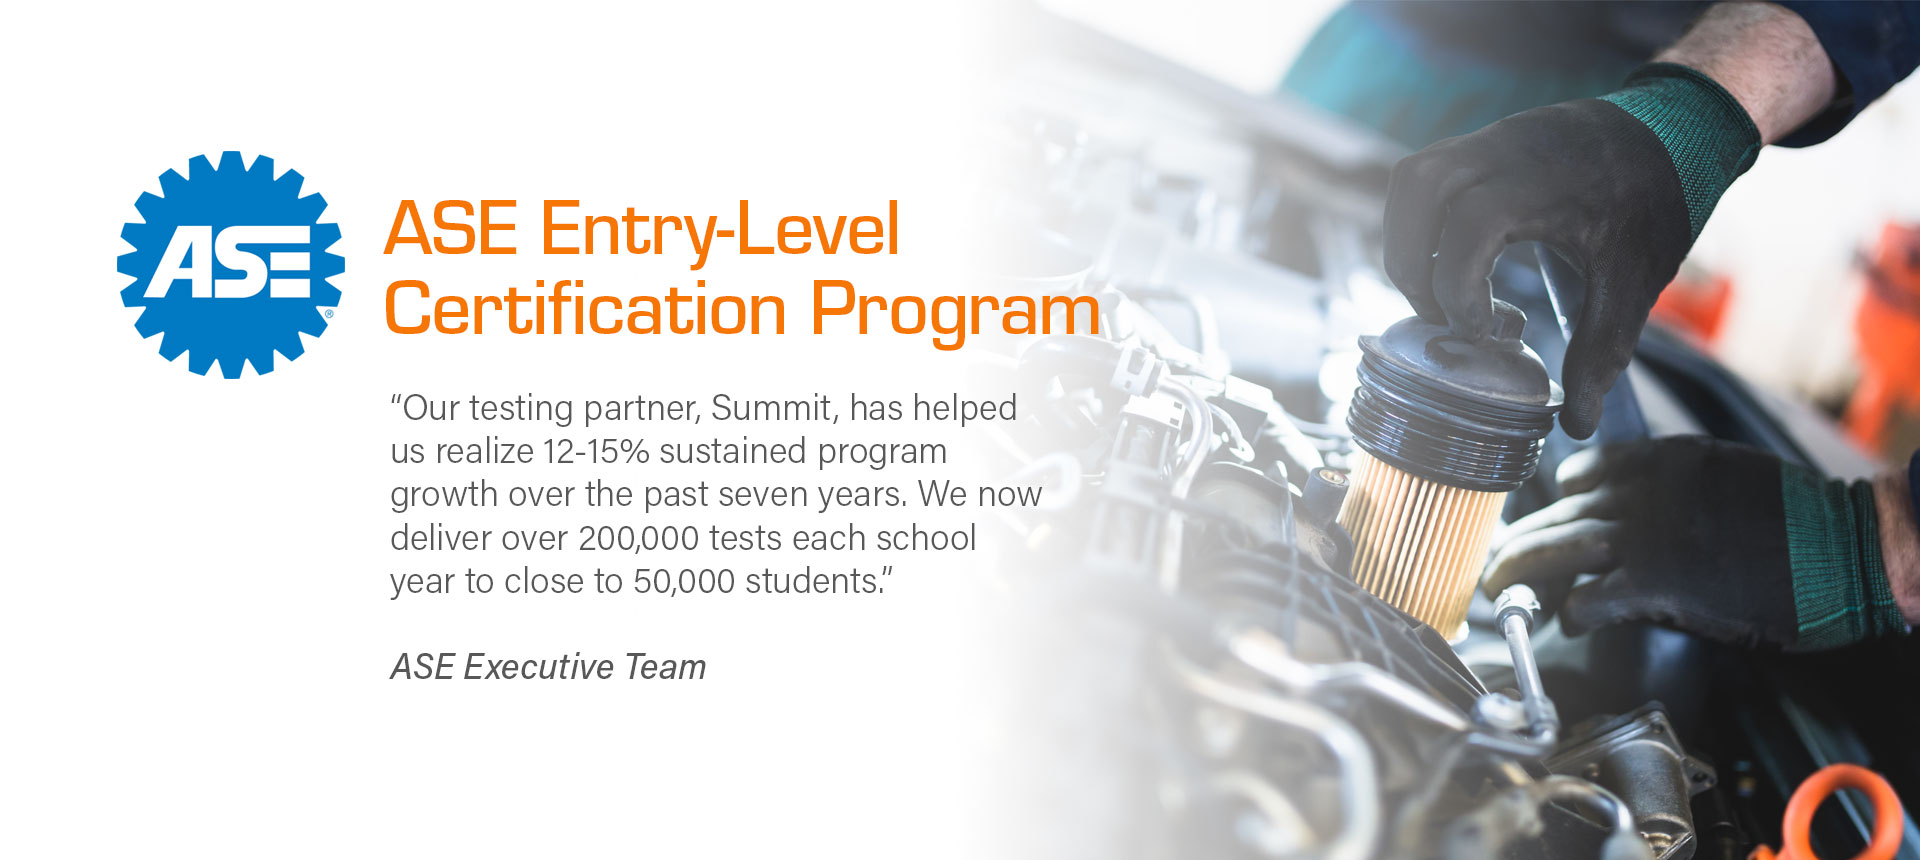 ase excellence automotive certification